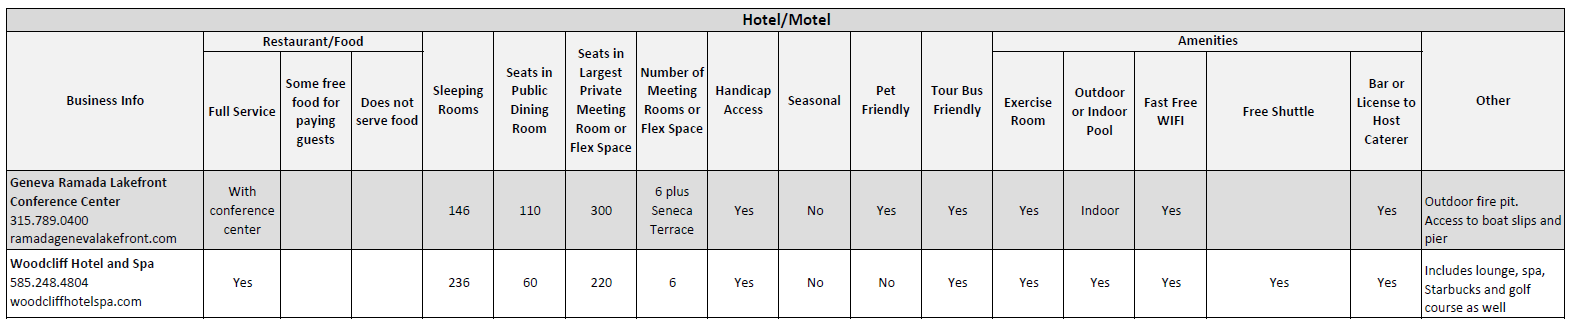 hotel.motel.PNG